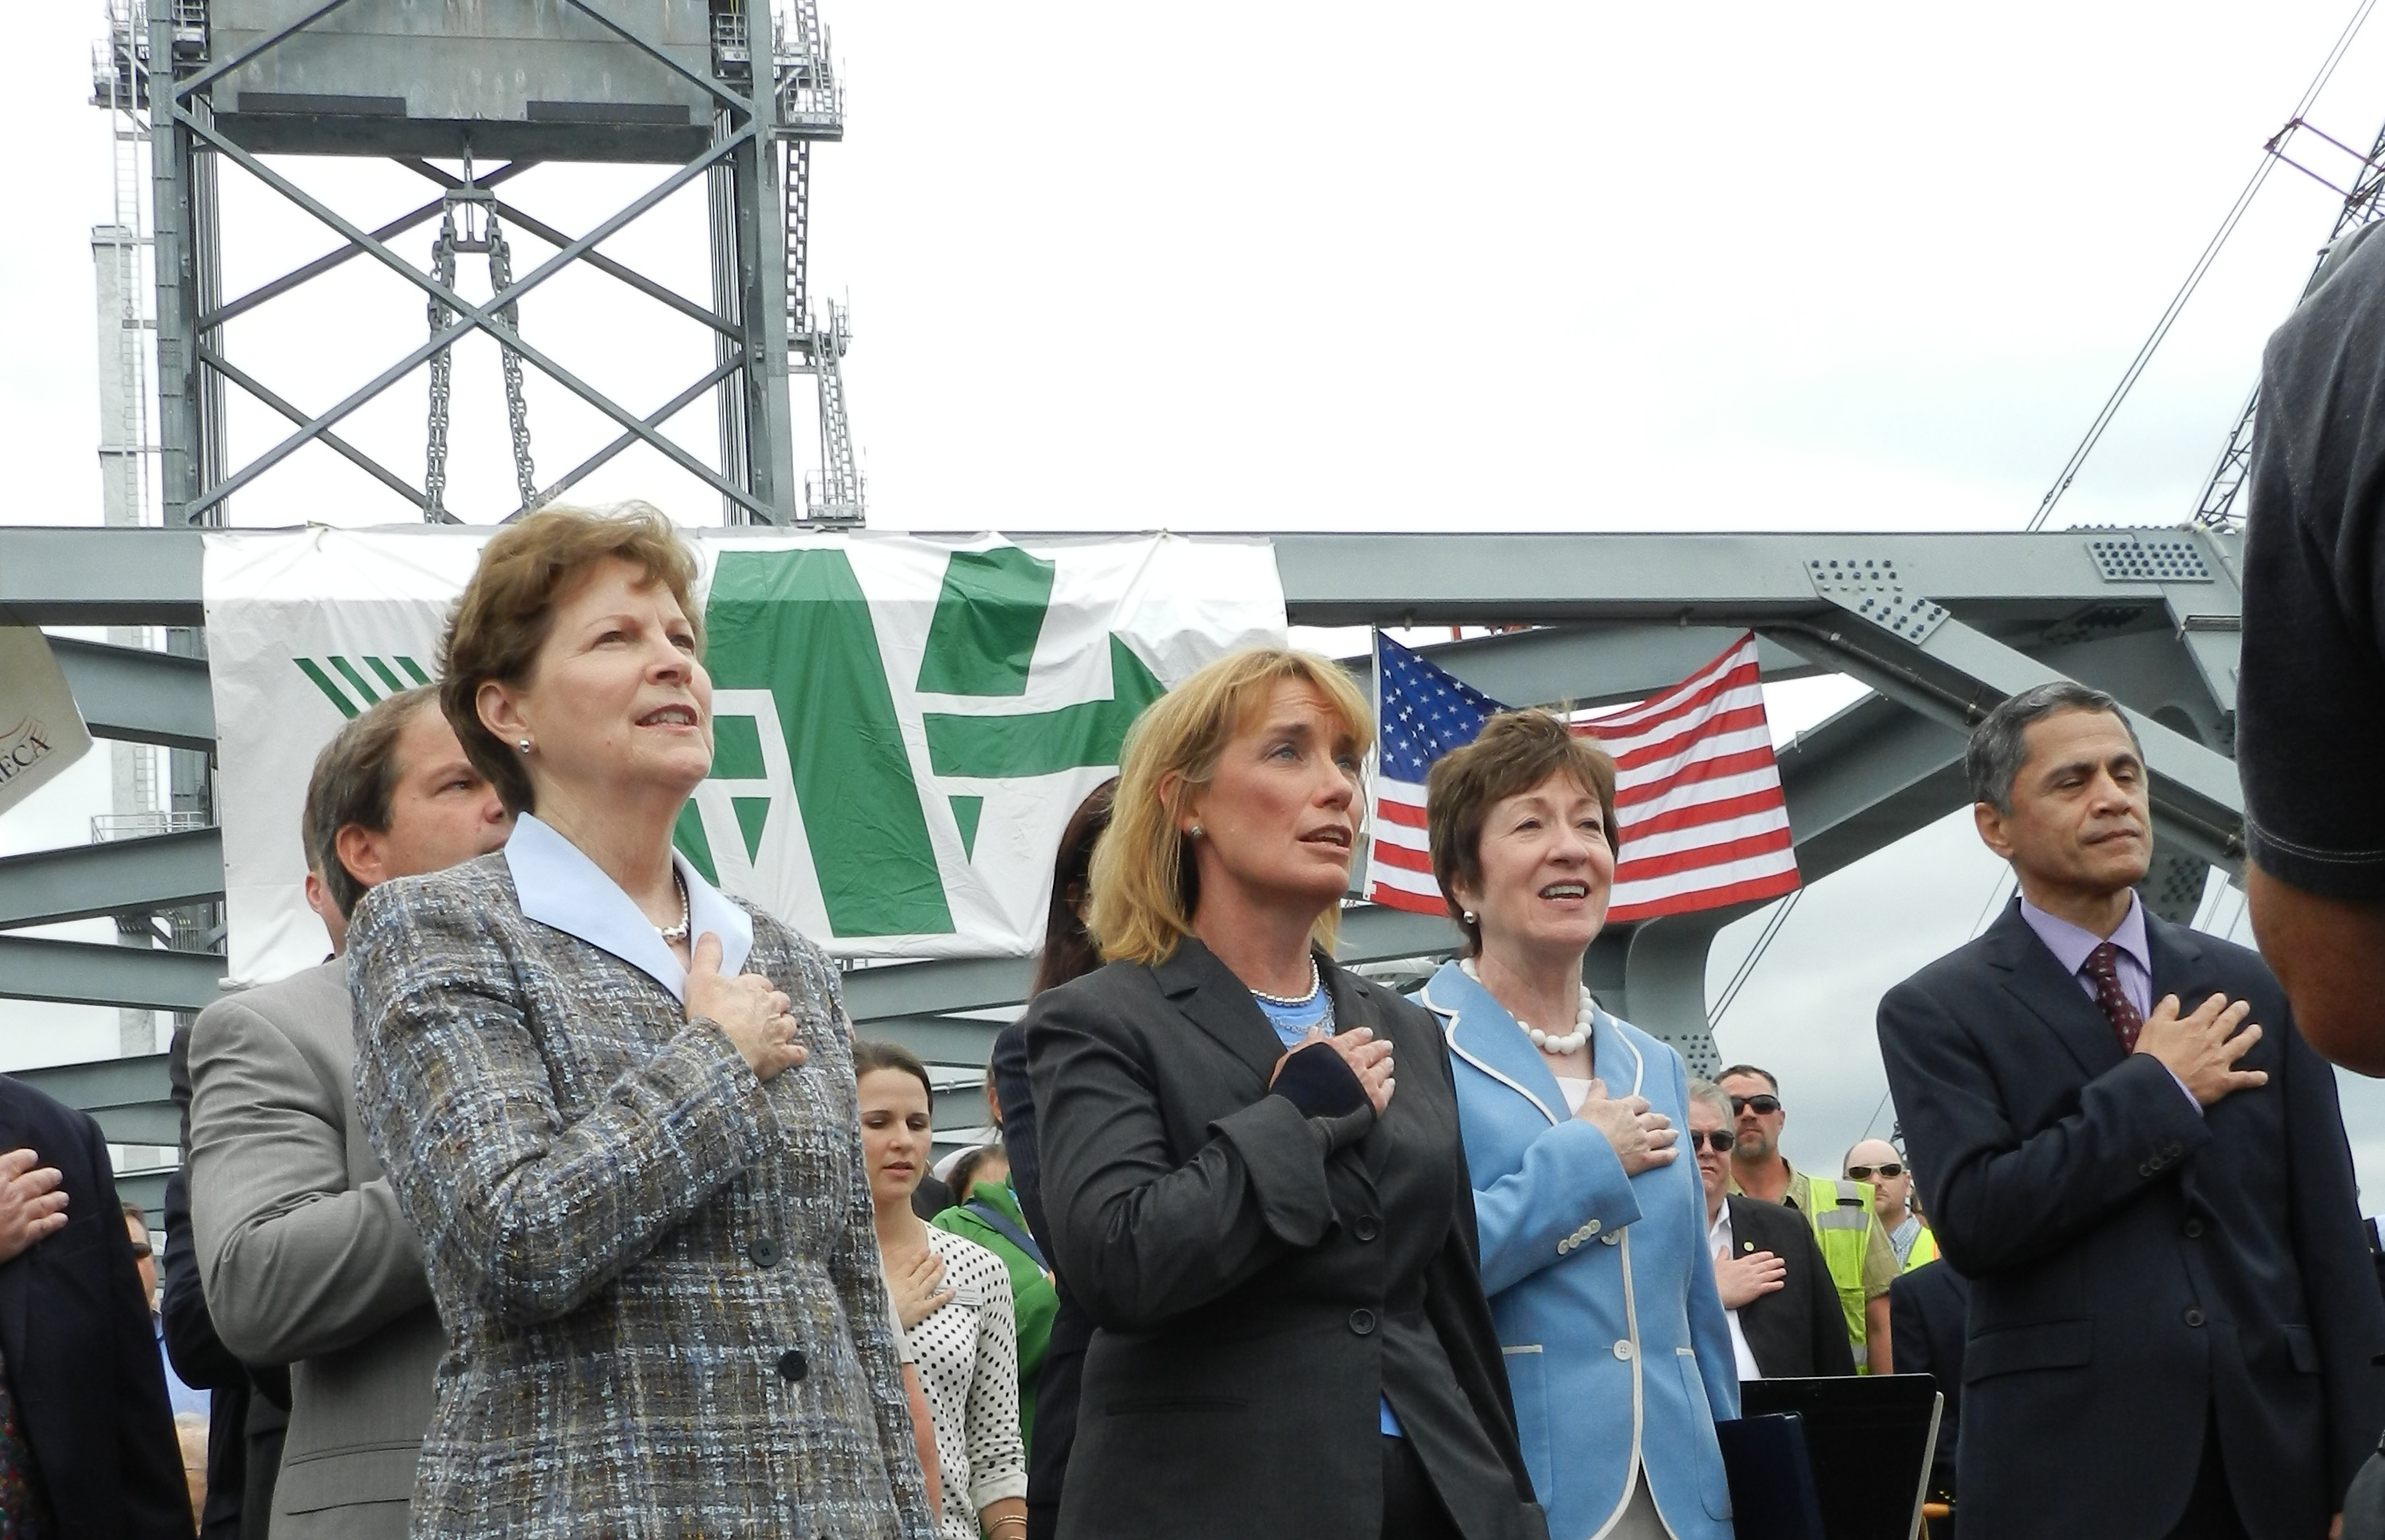 SHAHEEN CELEBRATES OPENING OF NEW MEMORIAL BRIDGE